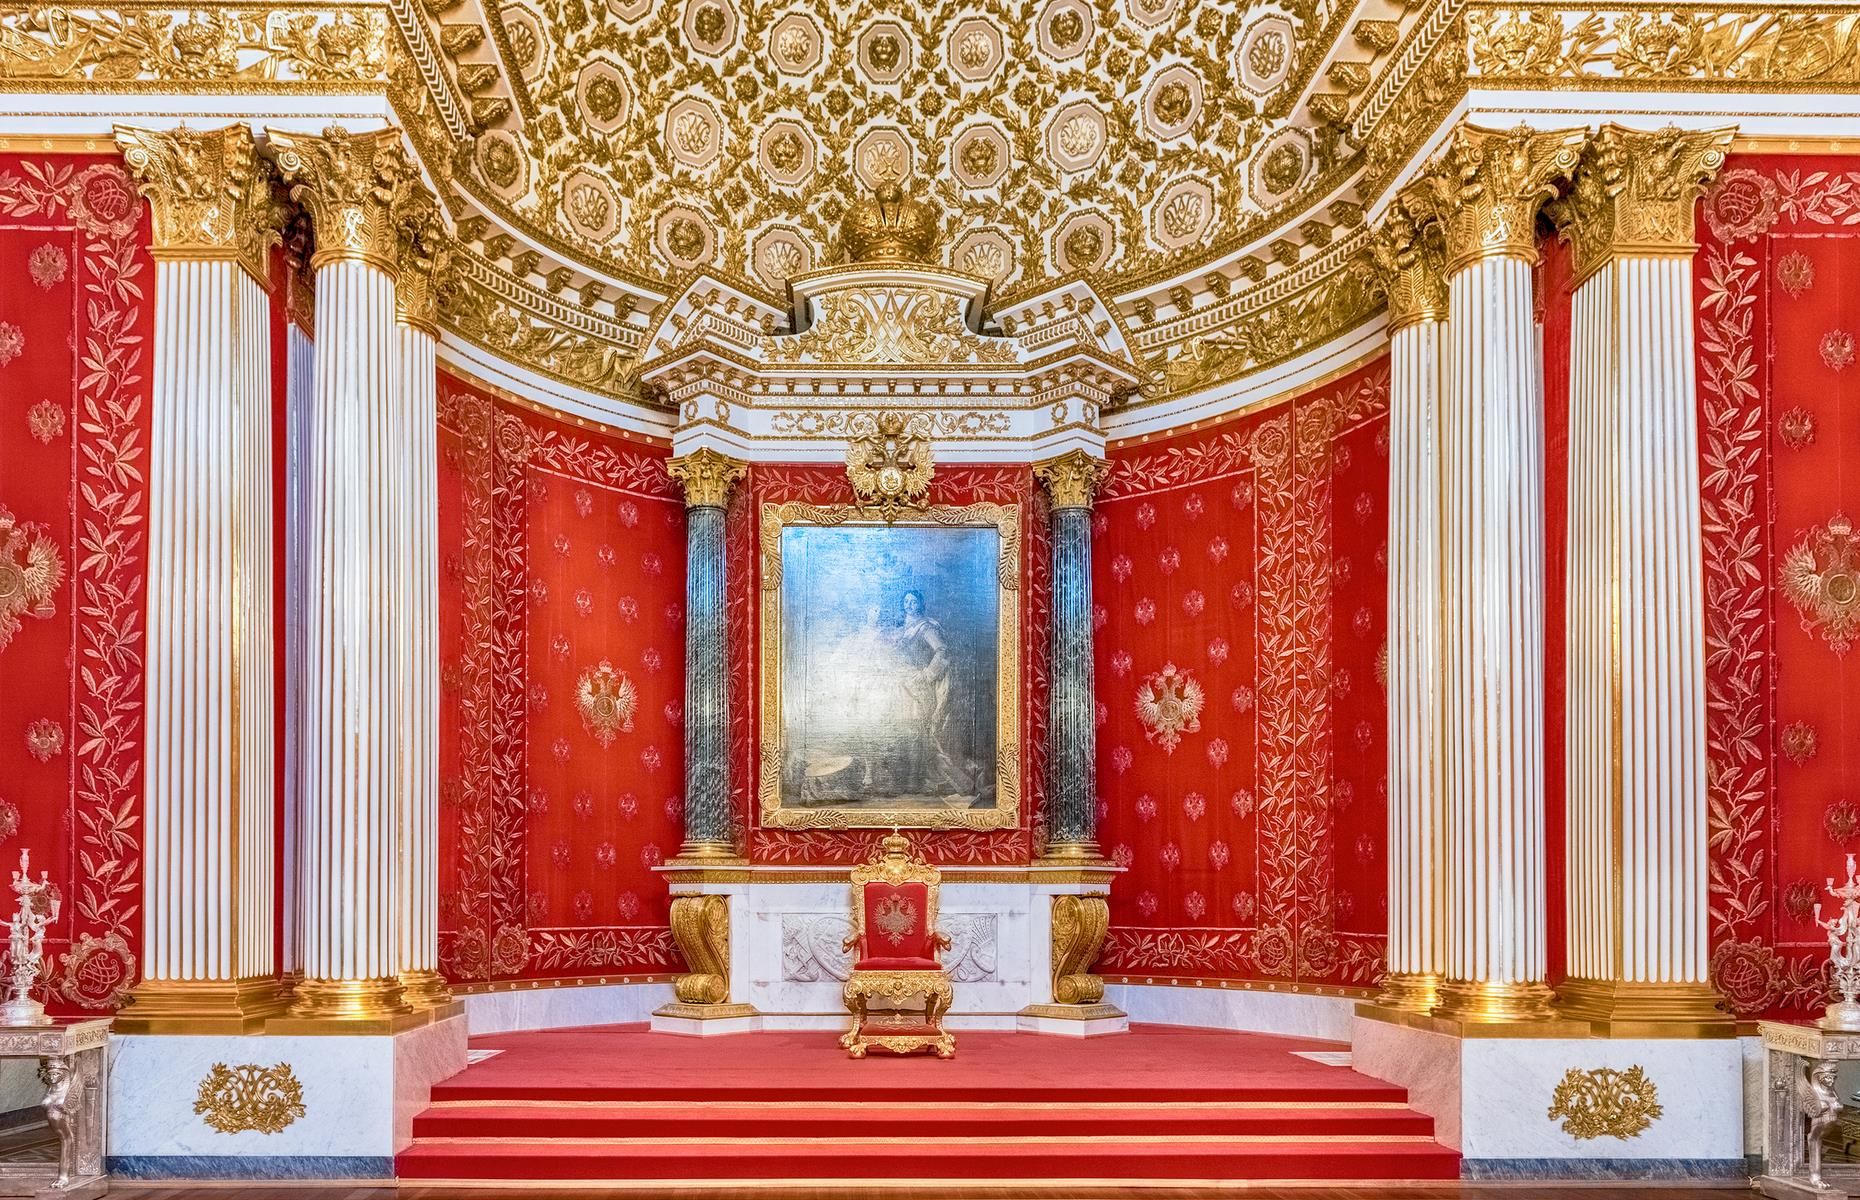 Slide 8 of 53: The inside is equally opulent, which is a big ask given the gilded promise of the exterior. The interior has a staggering 1,057 rooms, including the bold red Small Throne Hall (where 'small' is used as a relative term), plush with velvet and gold detailing.